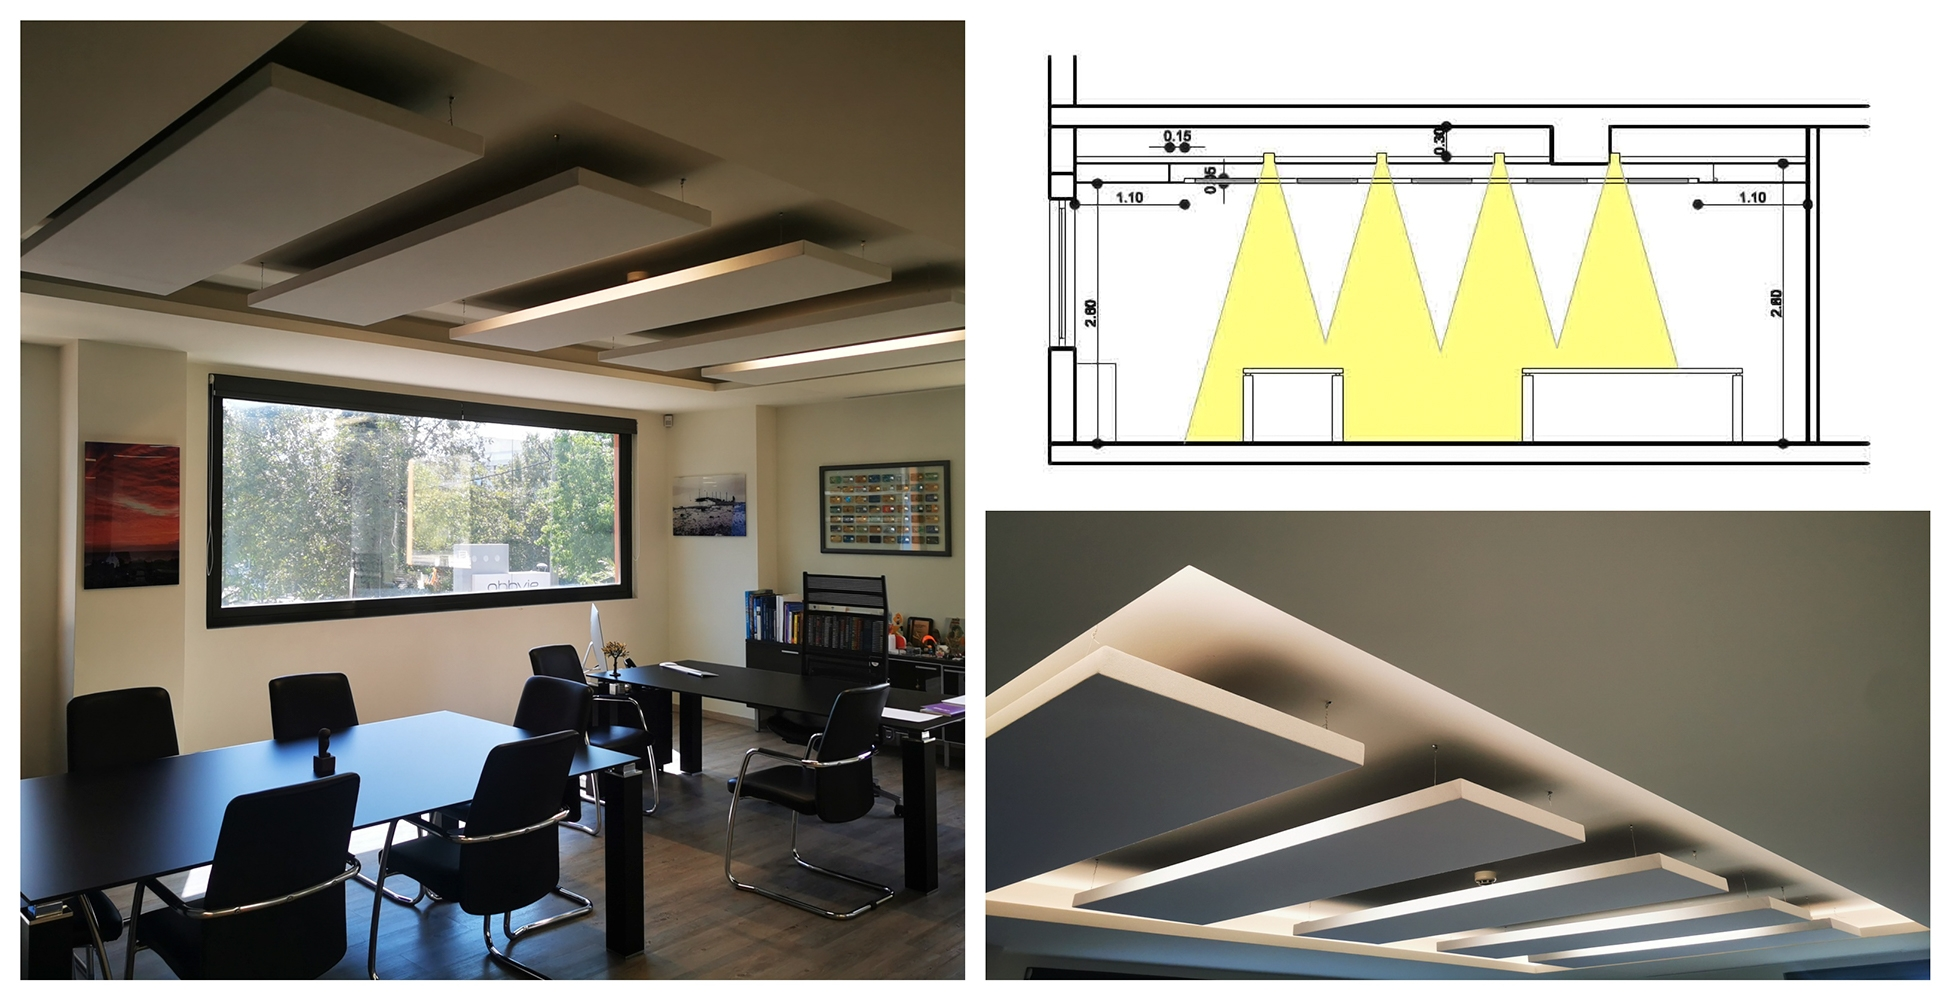 ceiling acoustic panels with lights